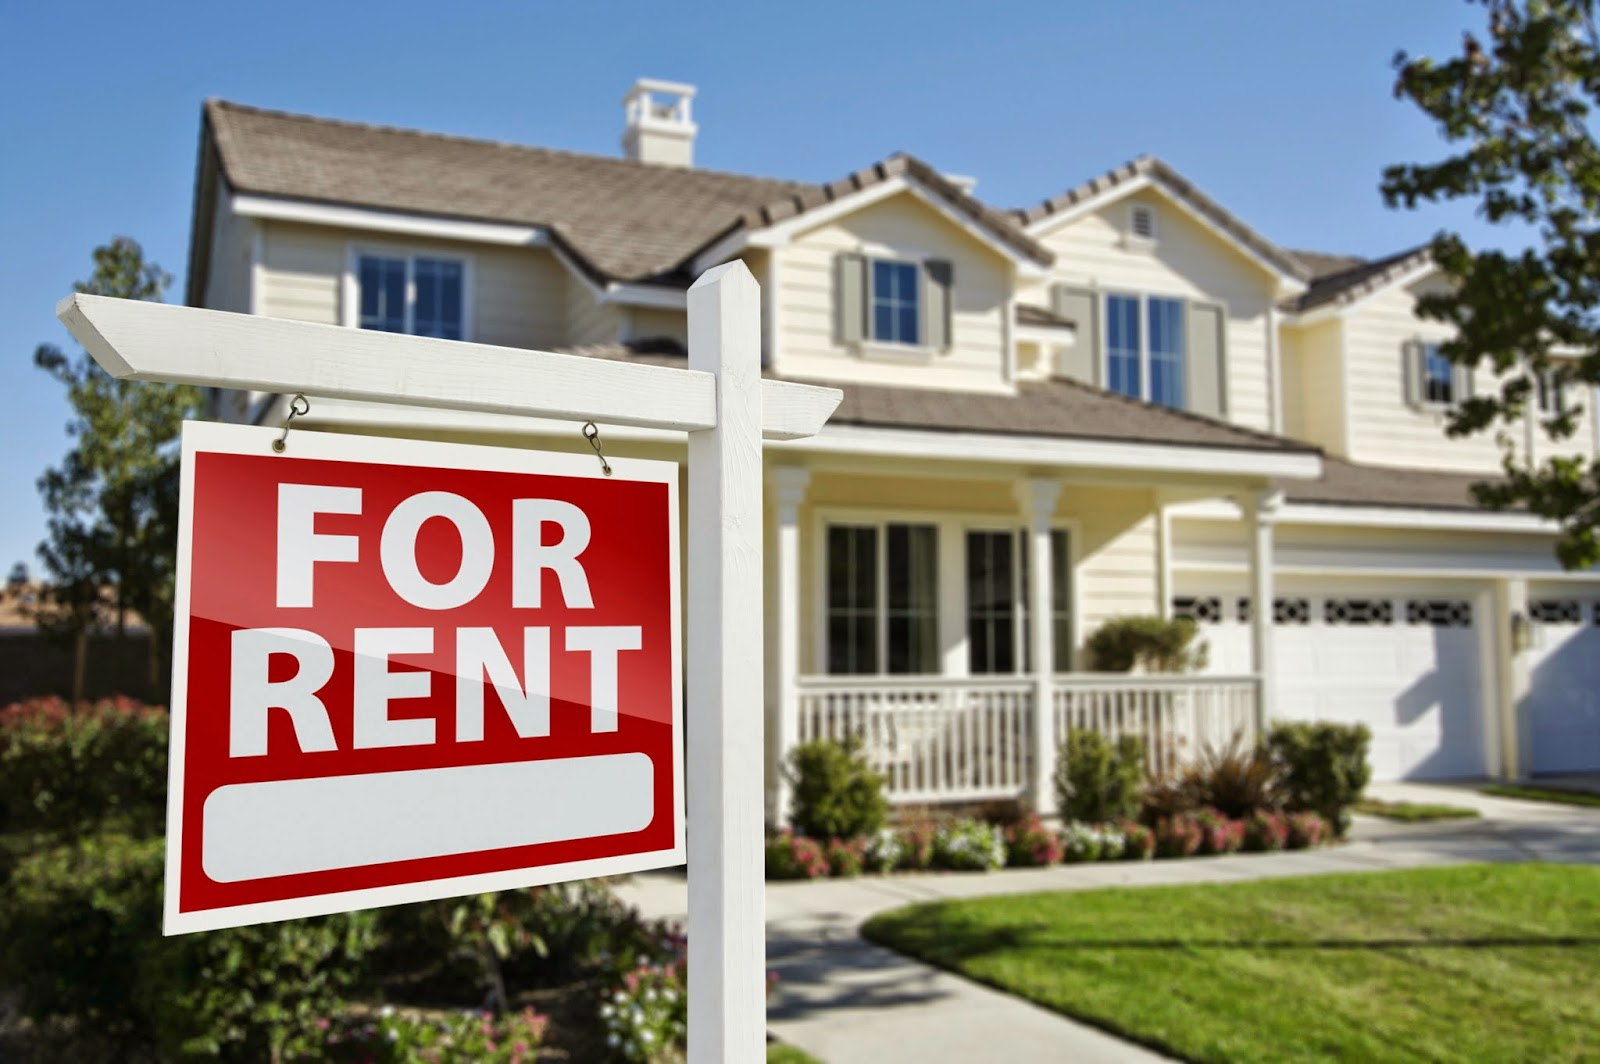 What You Should Know When Looking For A House For Rent